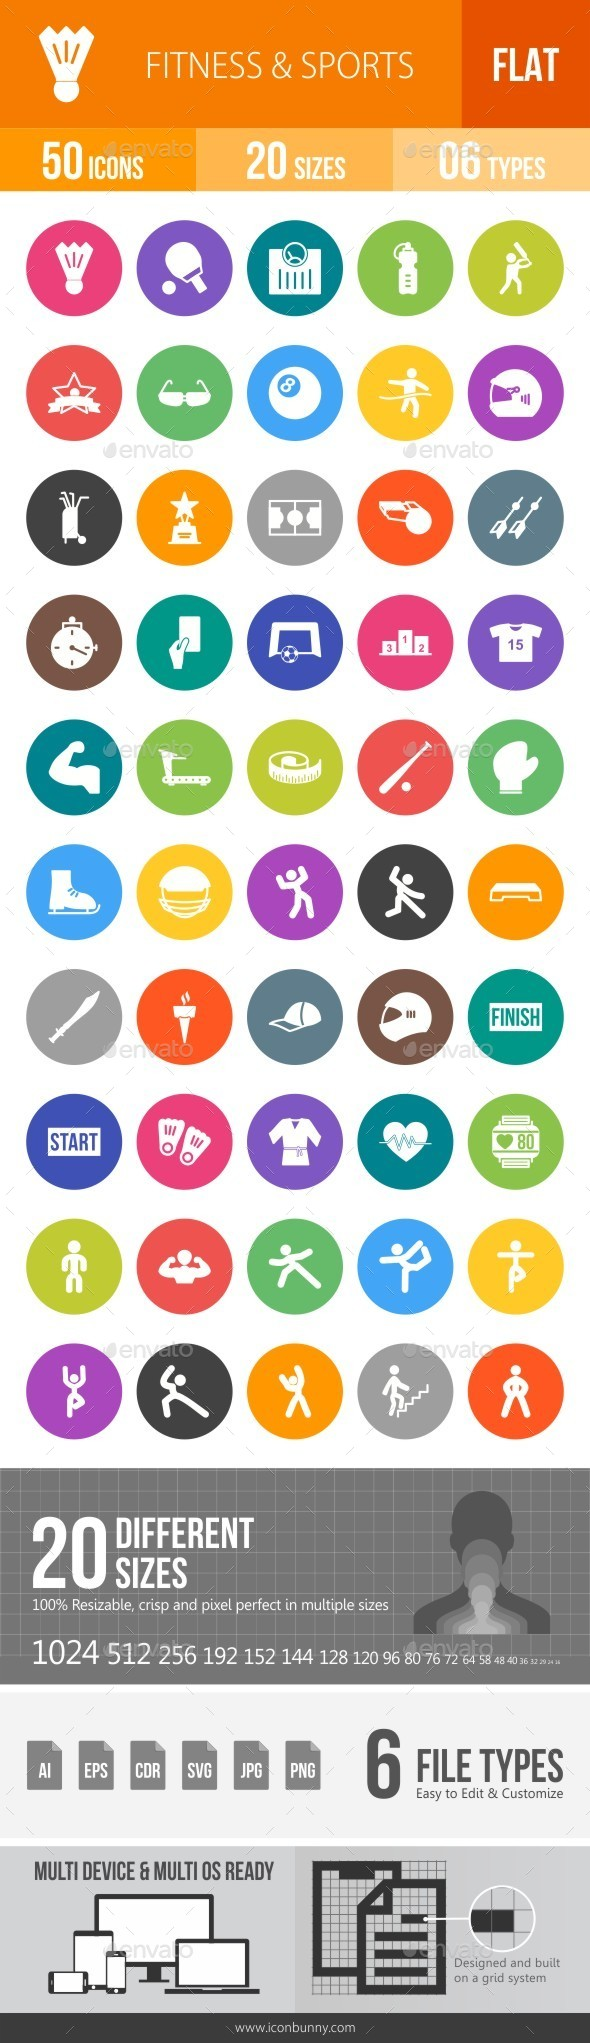 Fitness & Sports Flat Round Icons - Icons